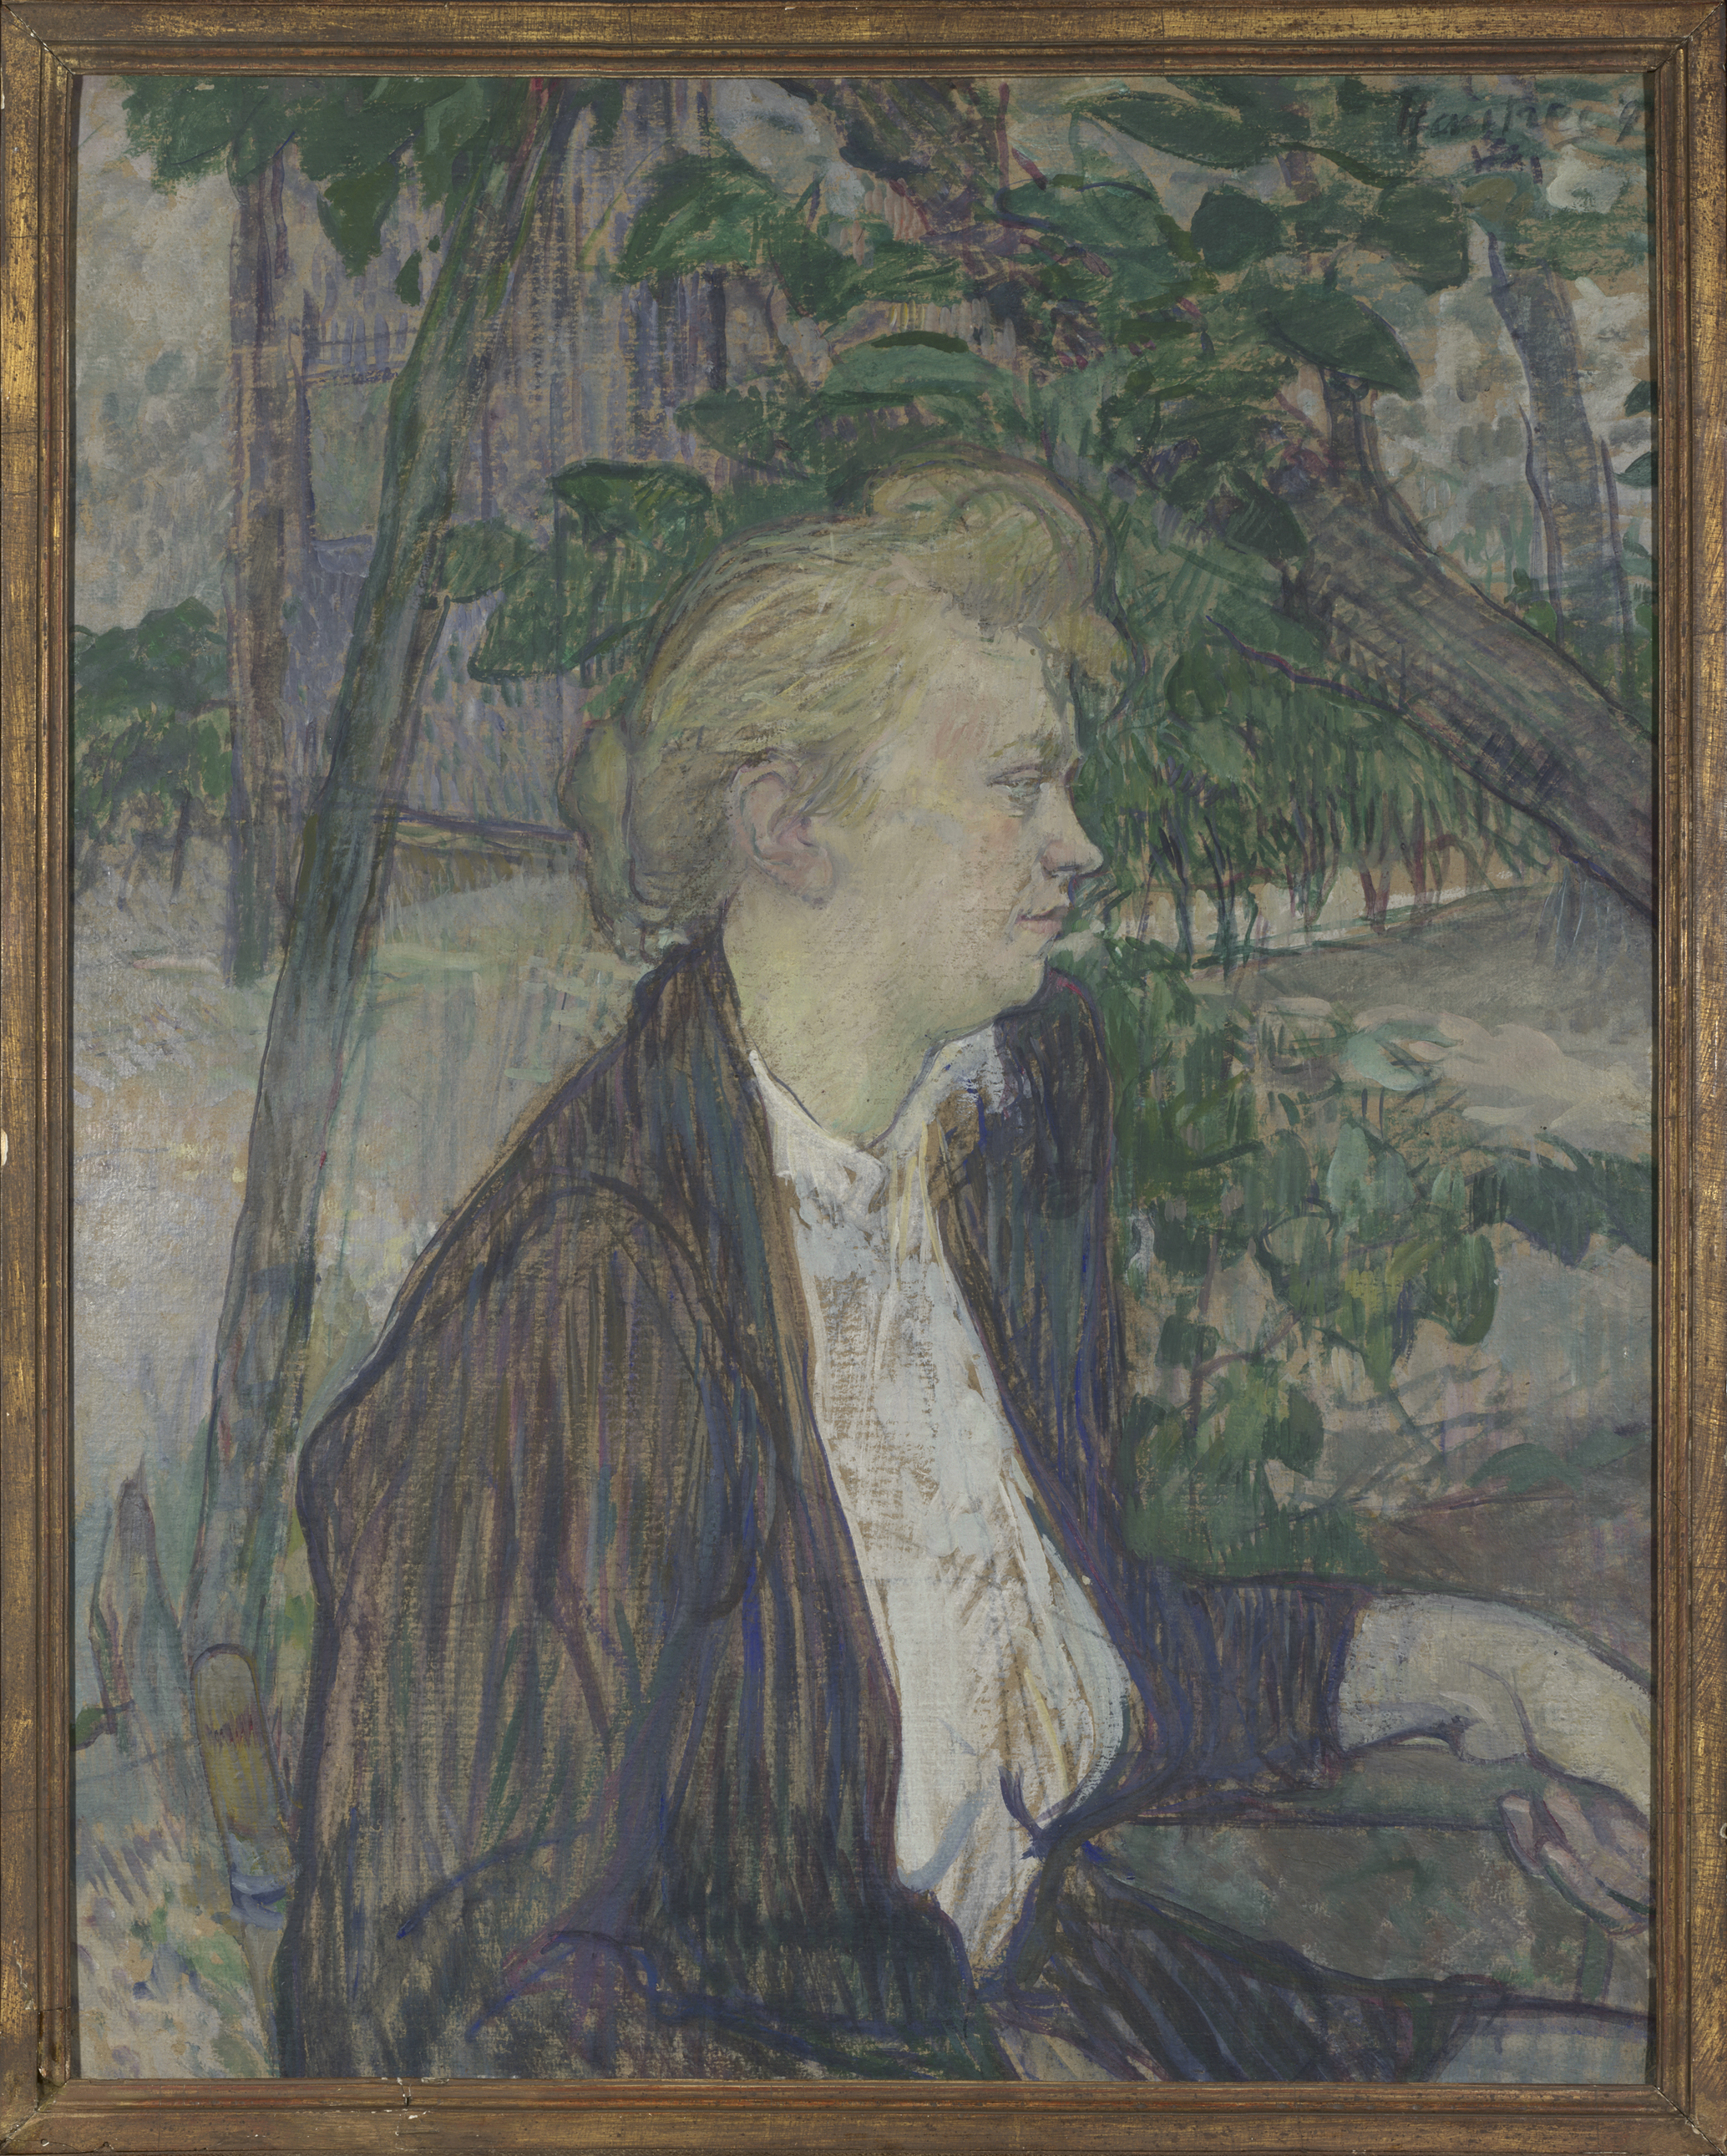 Woman seated in a Garden - Henri de Toulouse-Lautrec, 1891